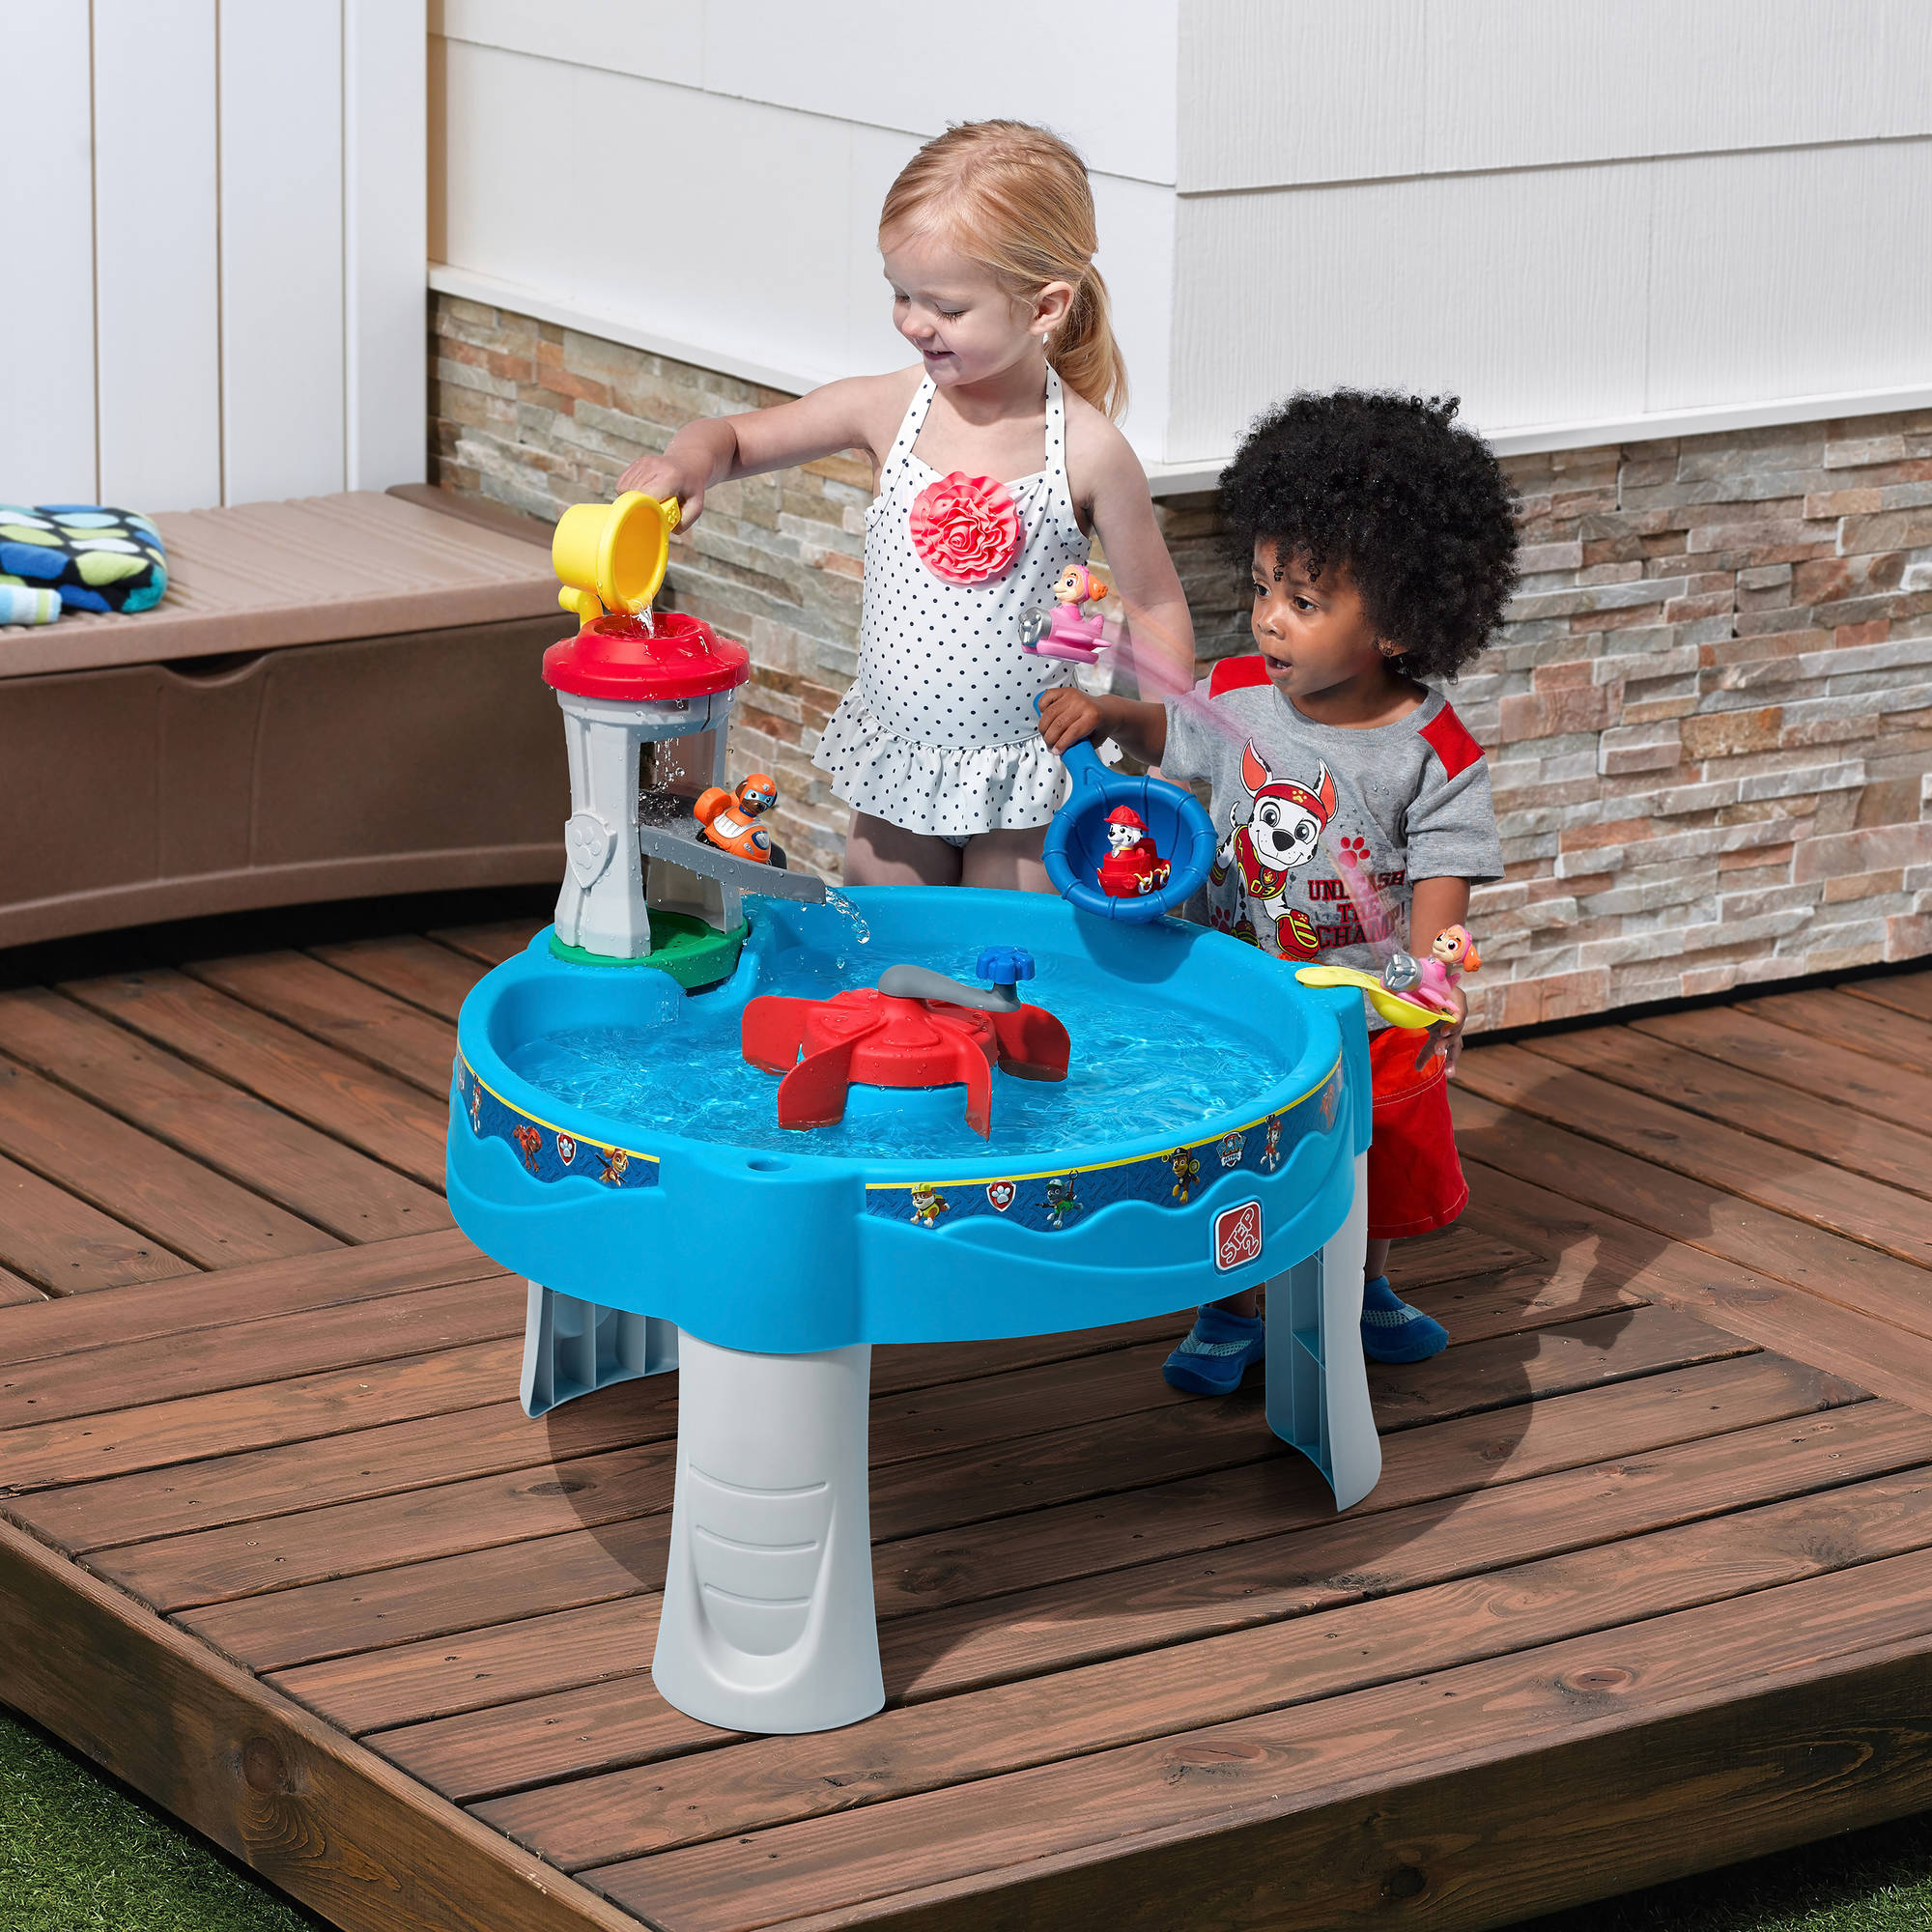 Paw Patrol Water Table Backyard Play Toy Toddlers Outdoors Explore Fun Kids  Gift